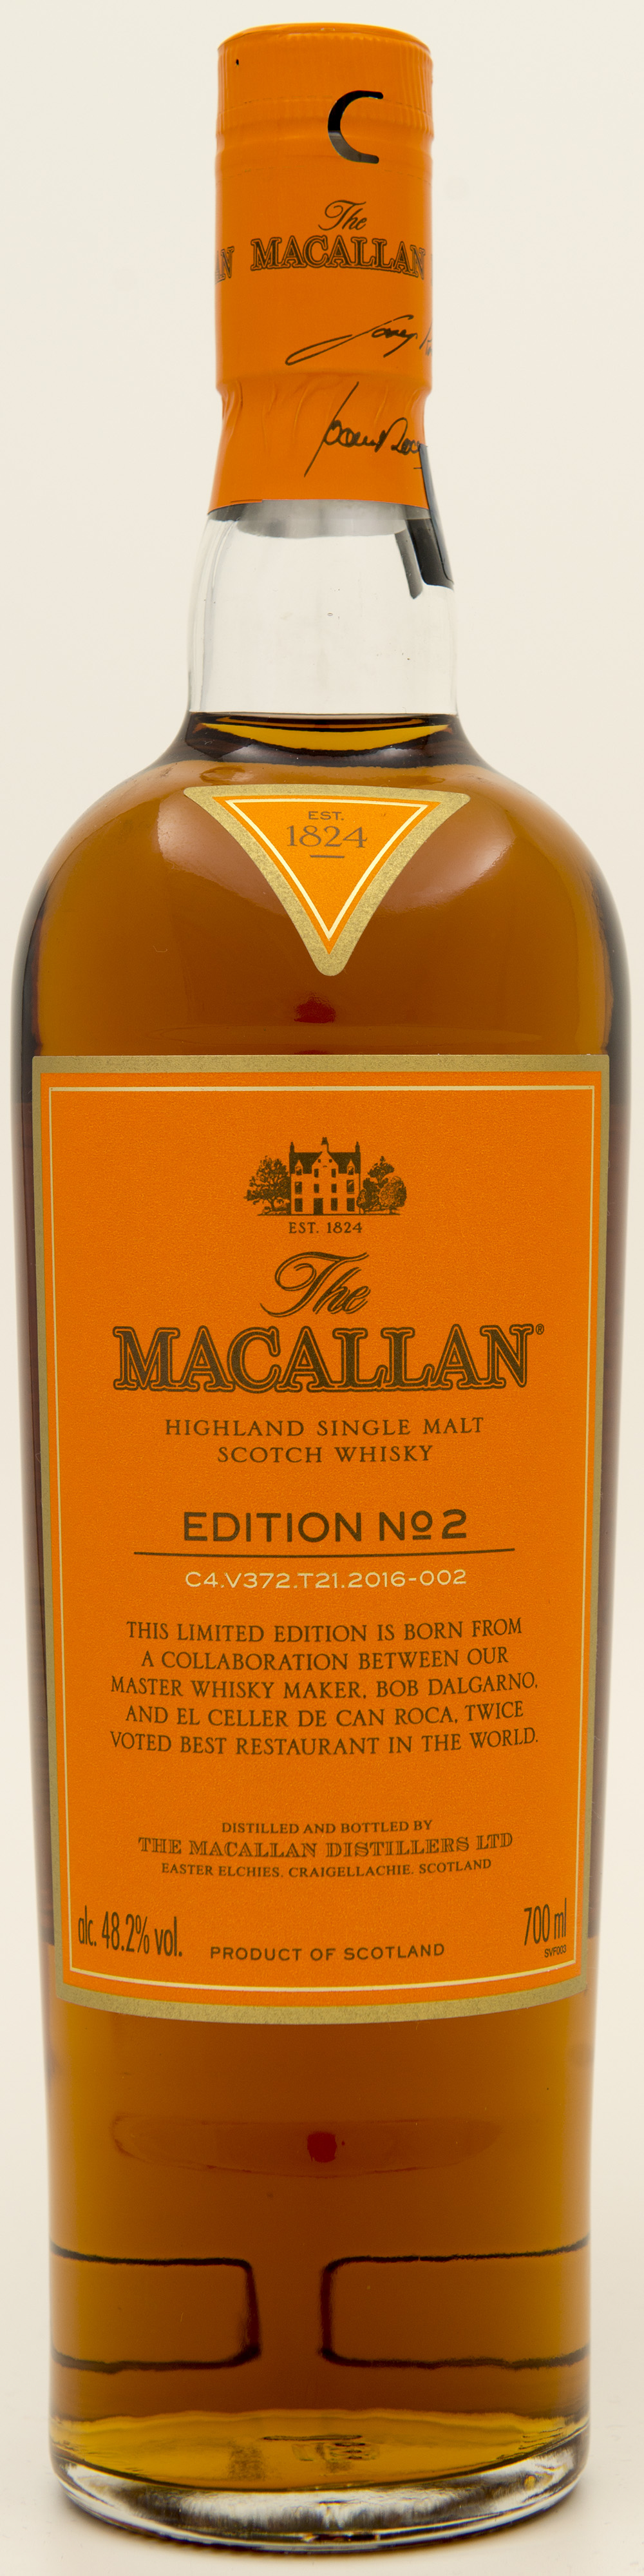 Billede: DSC_1389 - MacAllan Edition No 2 - bottle front.jpg